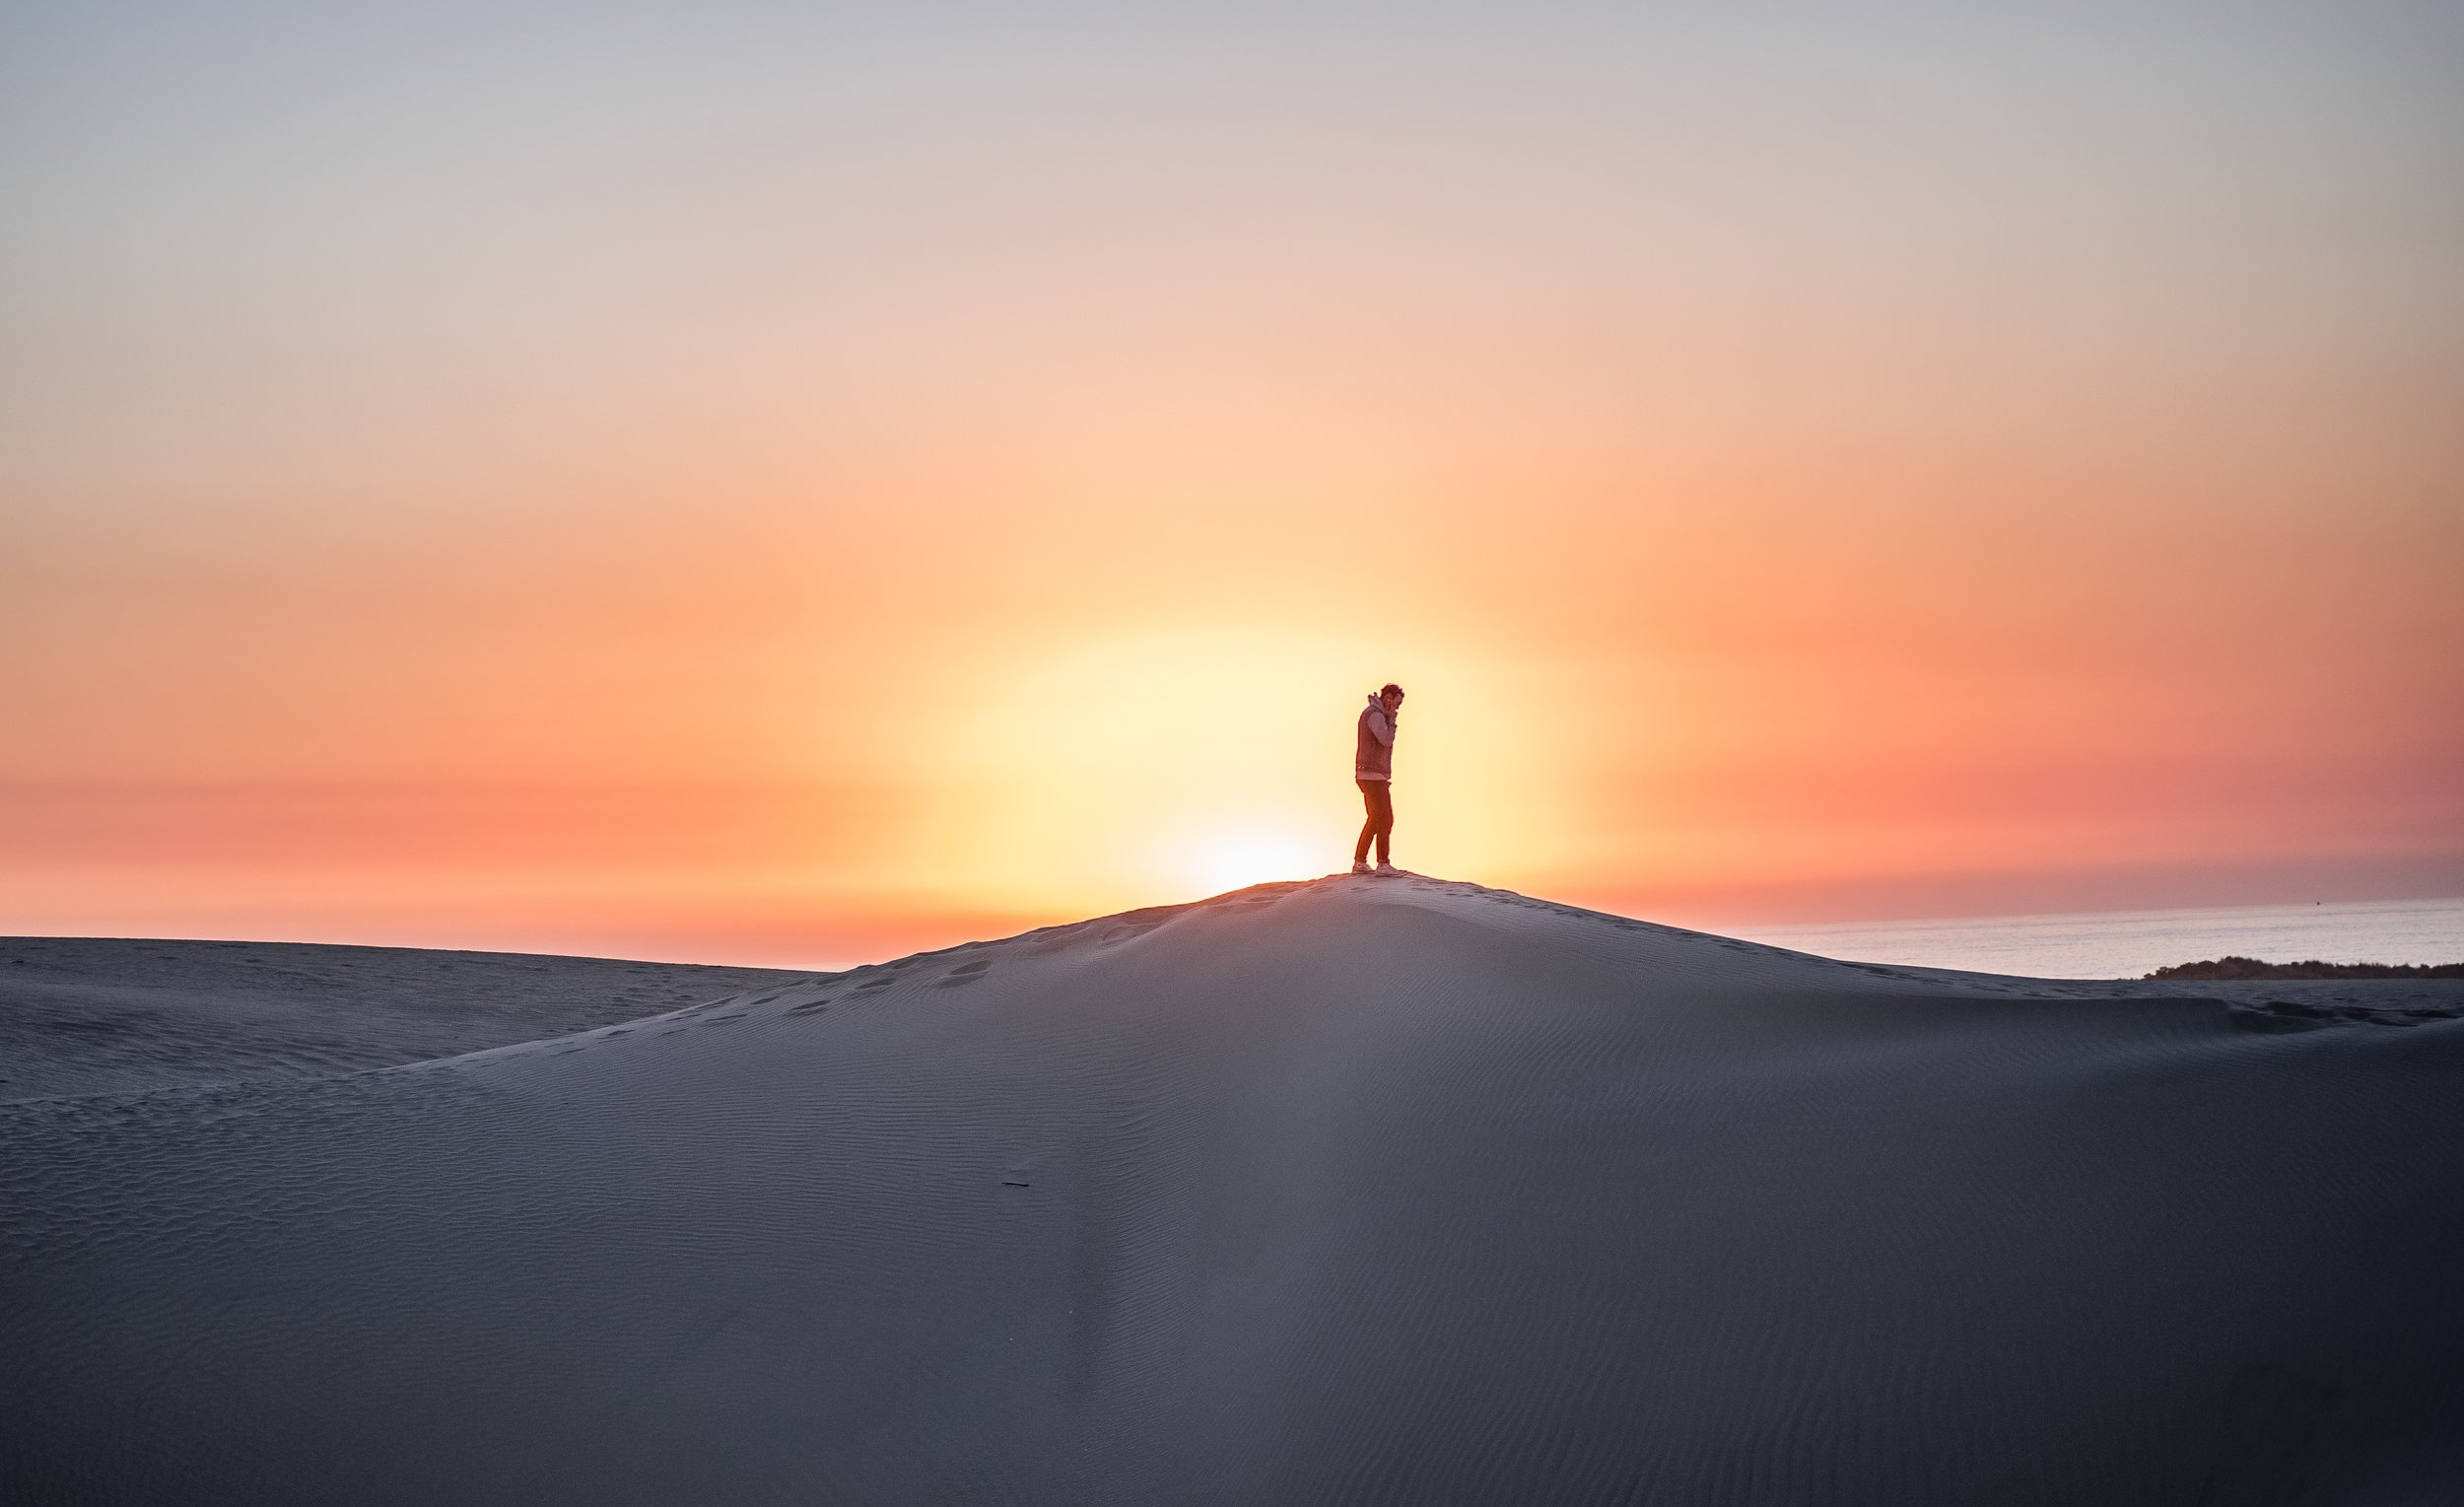 Man in a desert / contemplation